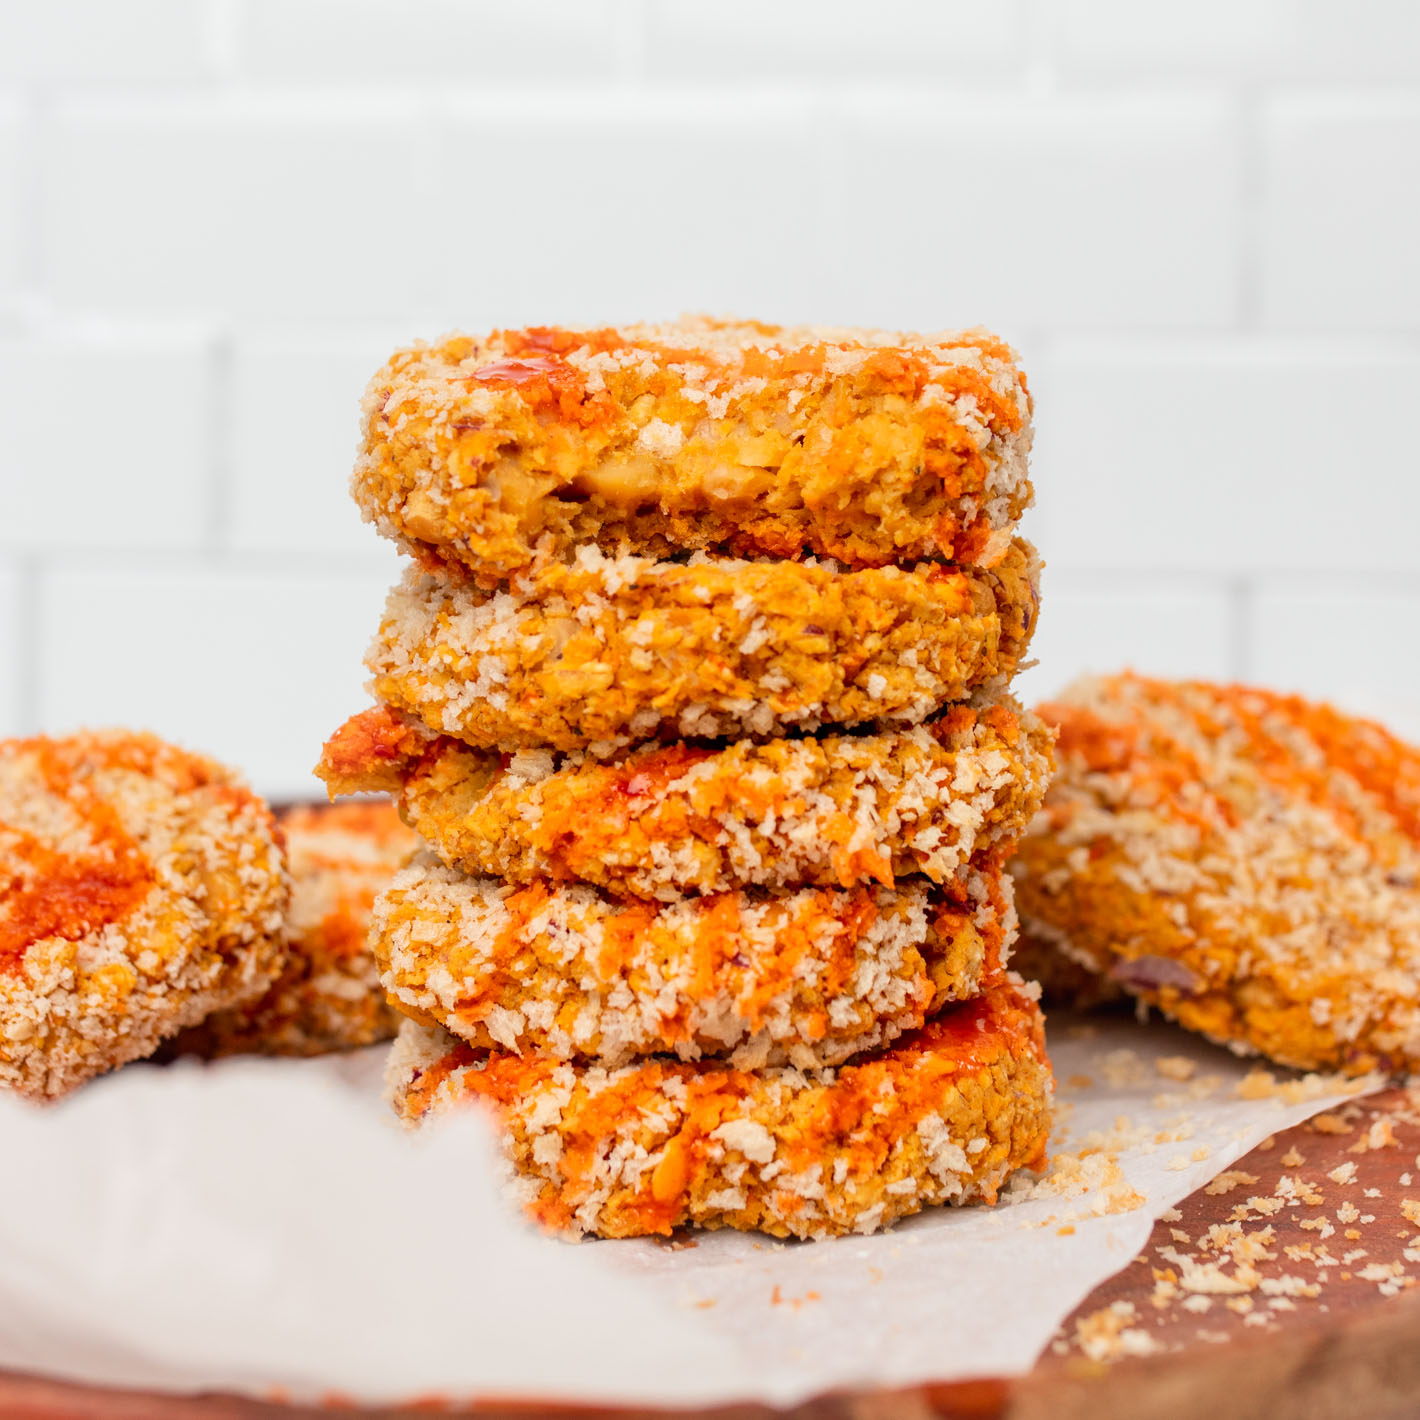 Chickpea Oat Patties